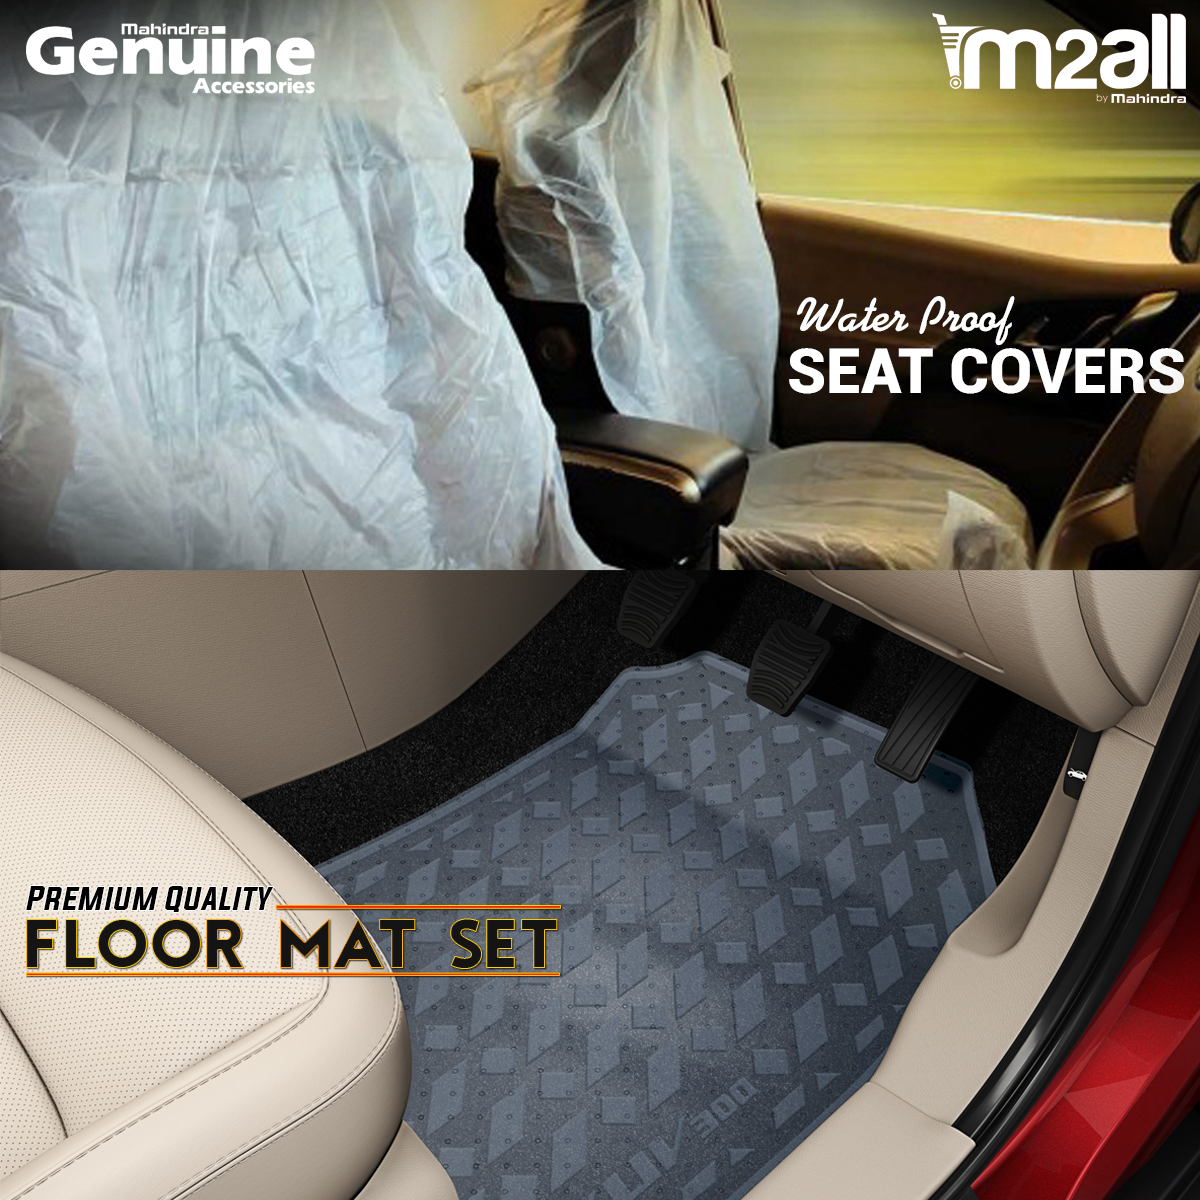 Seat Covers & Floor Mats - M2ALL